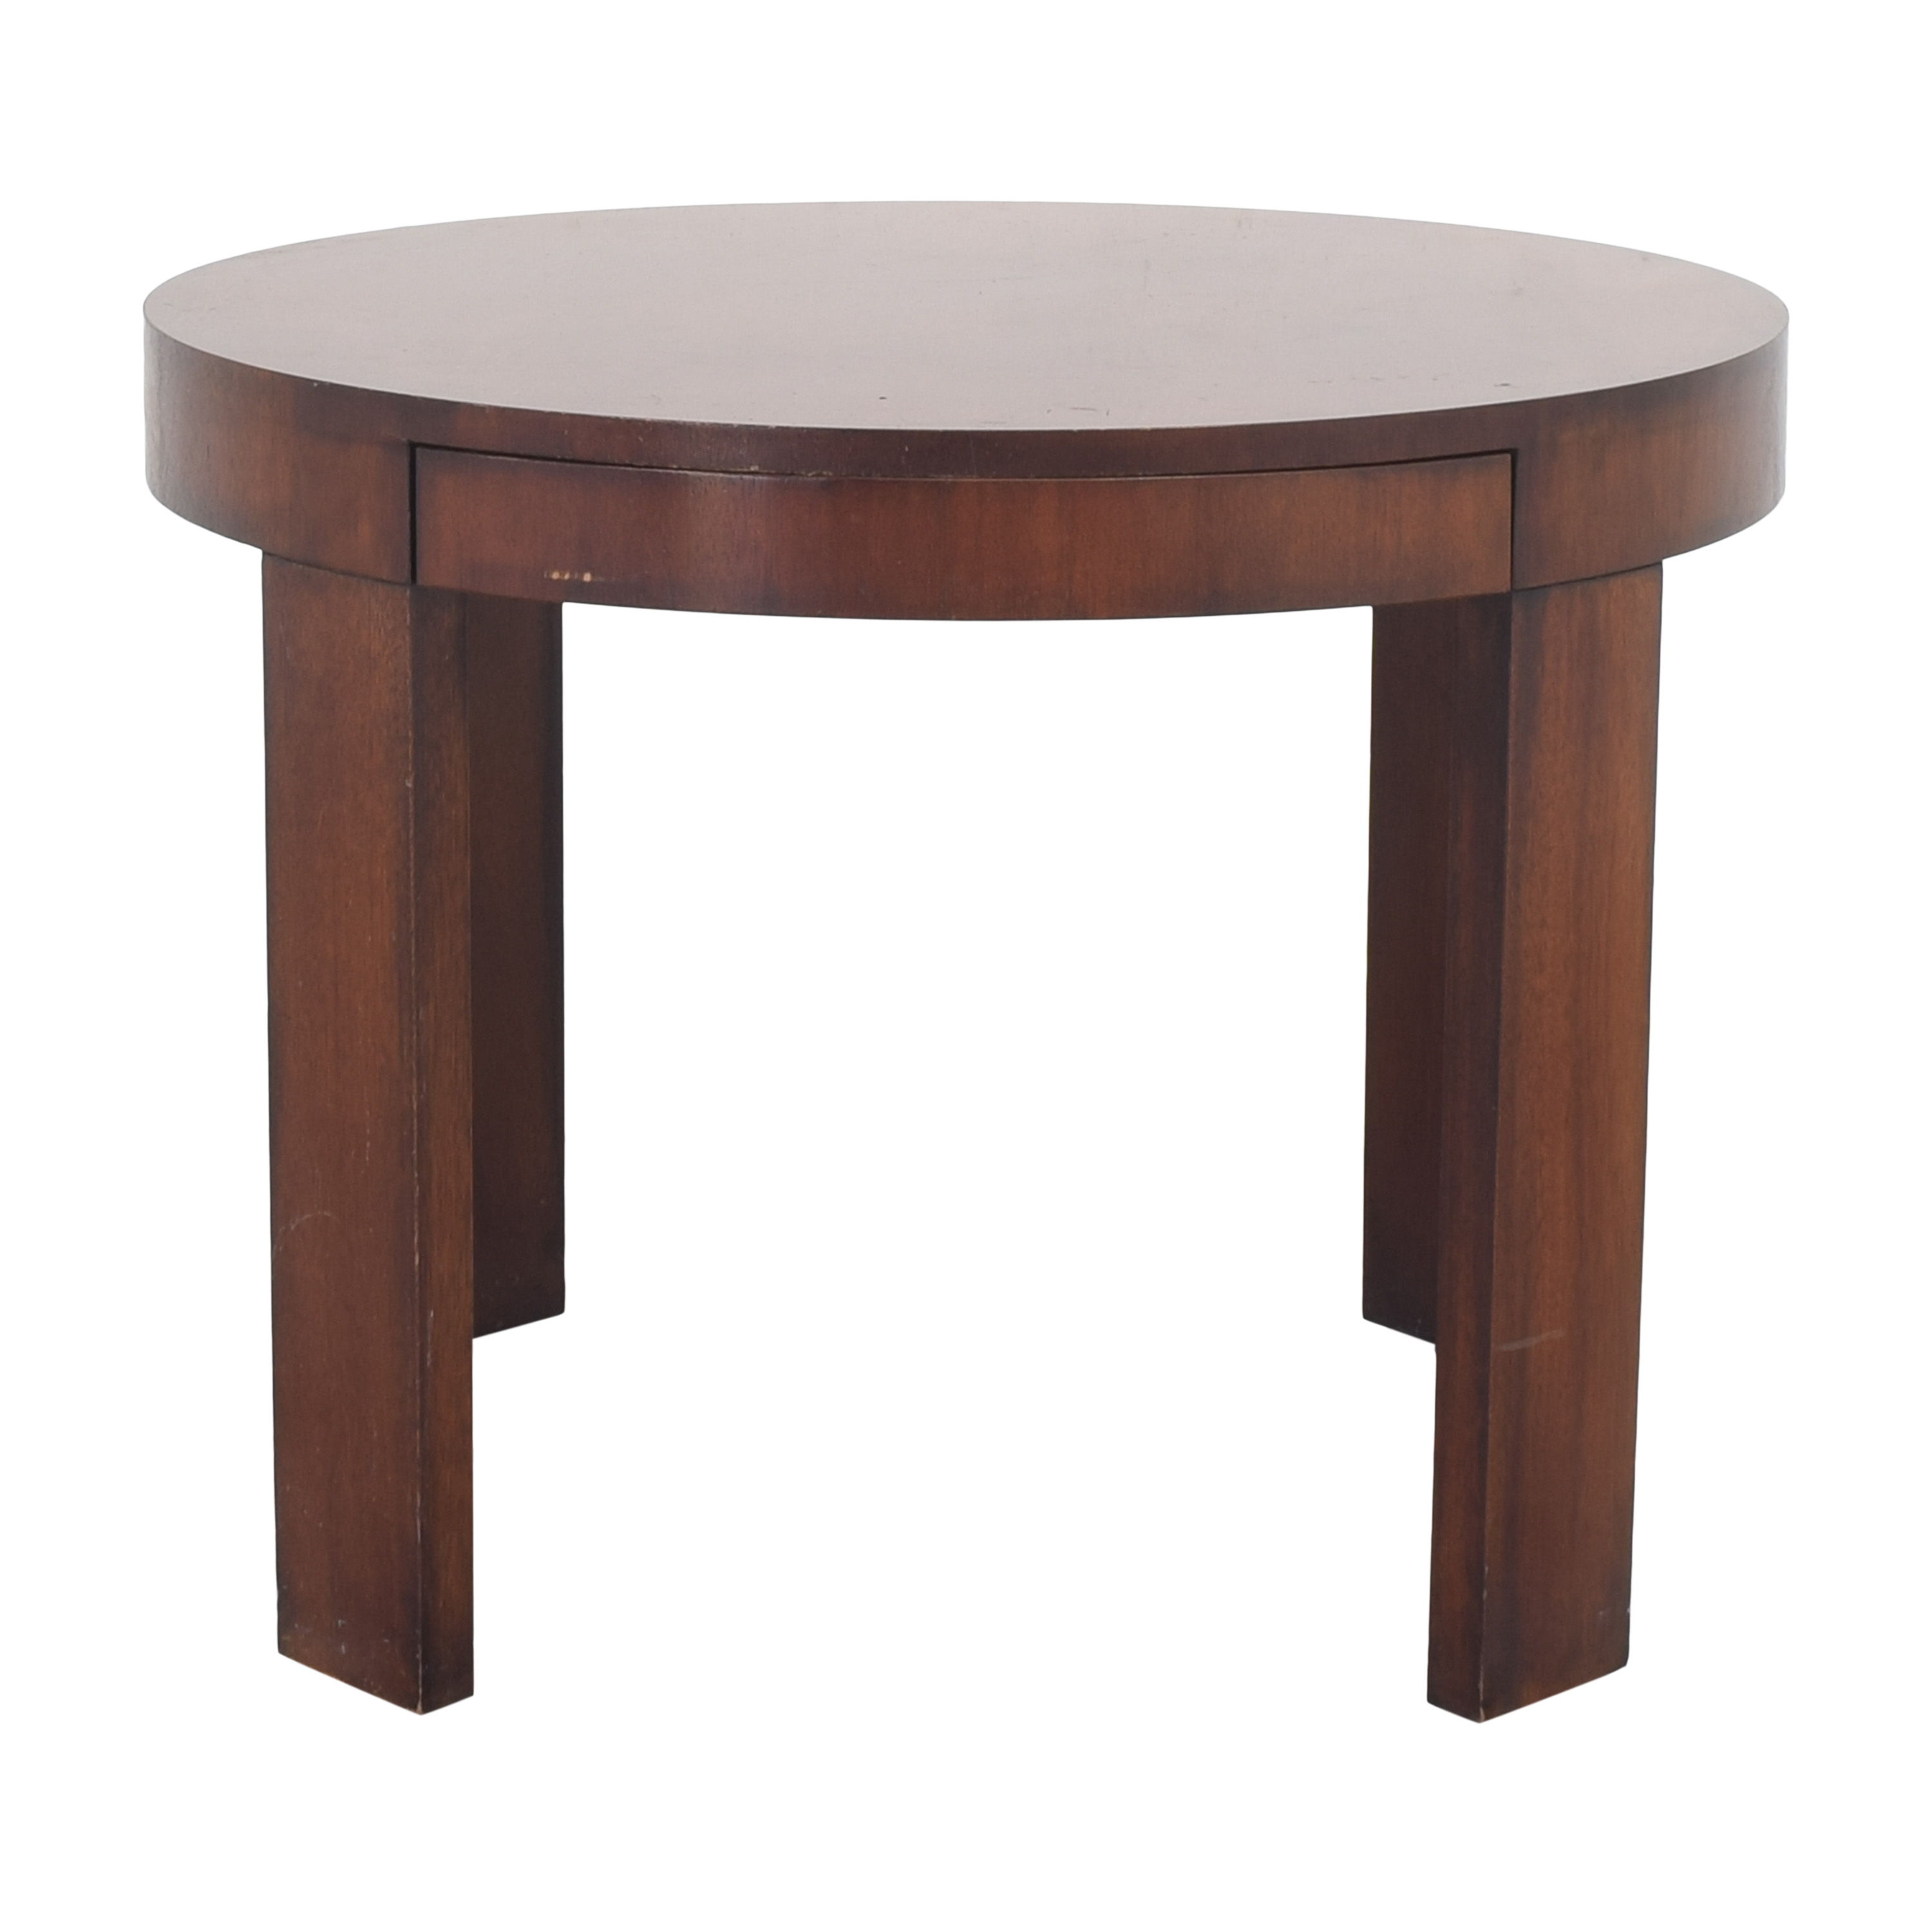 Ralph Lauren Home Ralph Lauren Home Round Single Drawer End Table nj